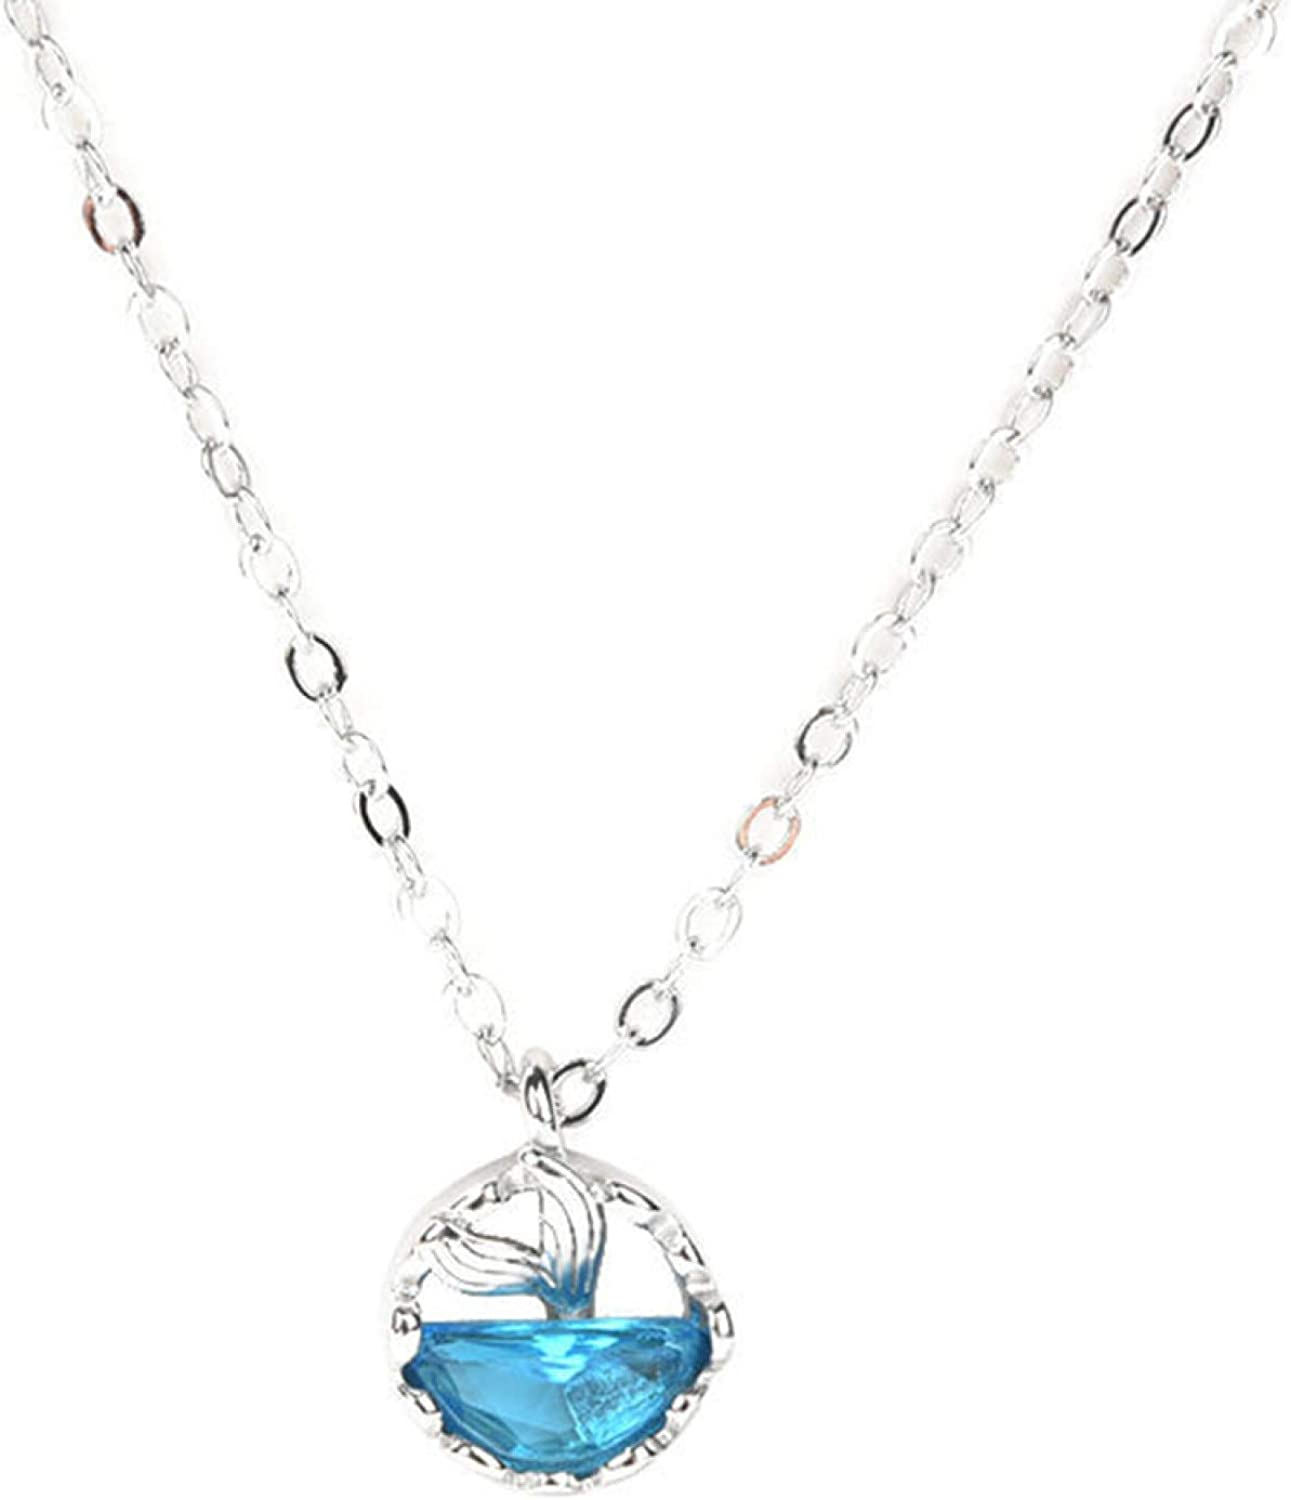 Faux Crystal Long-awaited Hollow Fish Tail Je San Diego Mall Chain Necklace Clavicle Pendant